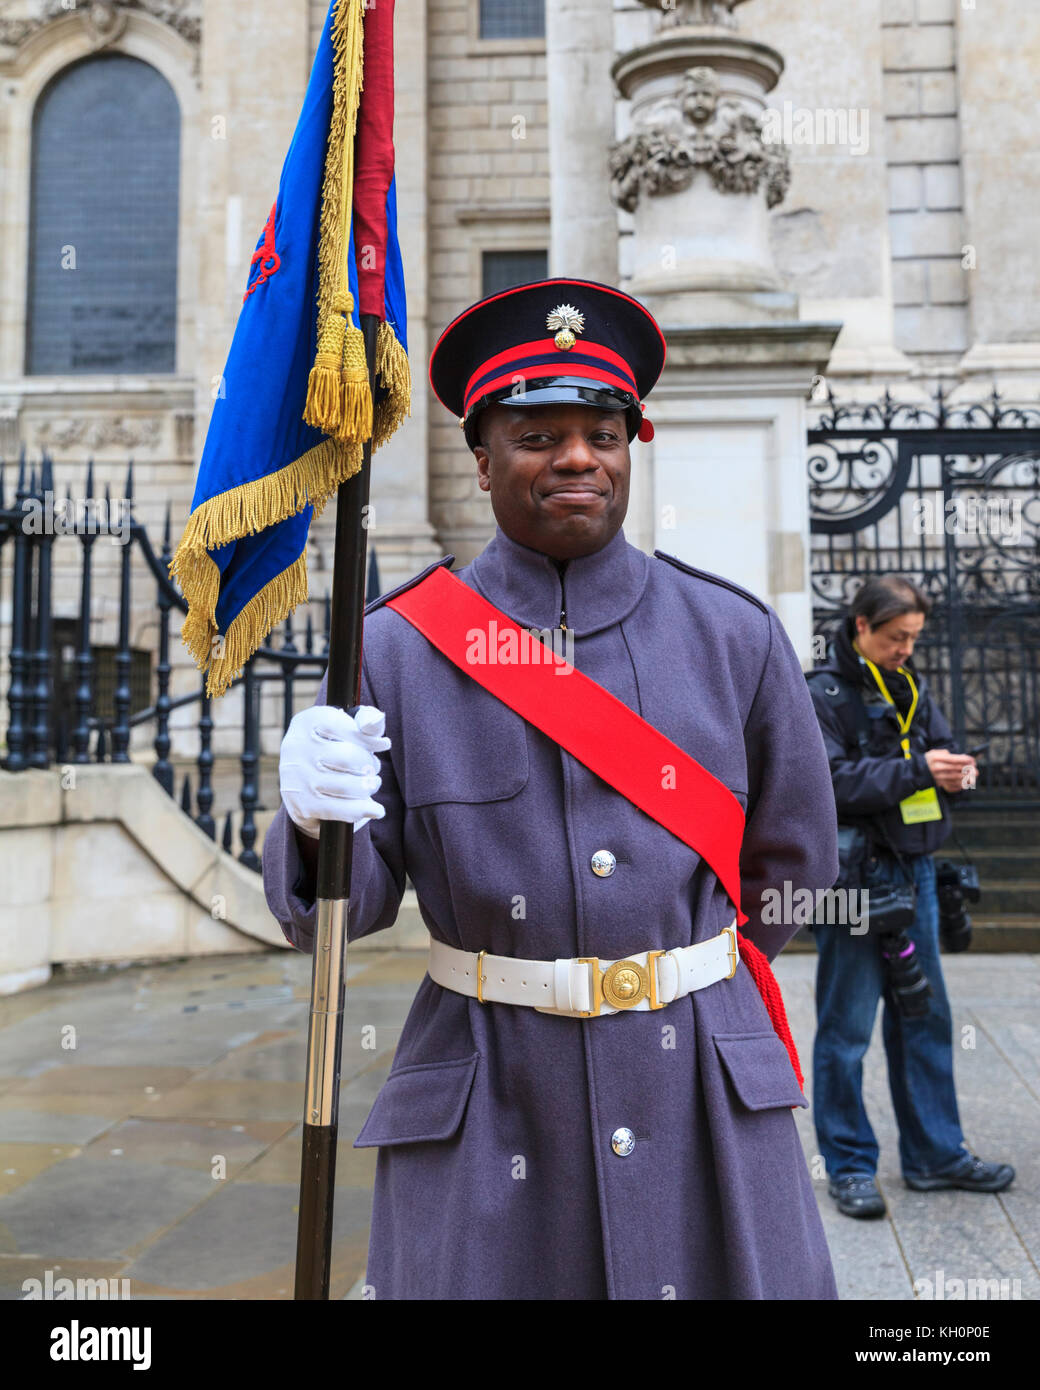 City of London, UK. 11th Nov, 2017. A soldier smiles for the cameras. The 2017 Lord Mayor's Parade, an 800 year - Stock Image